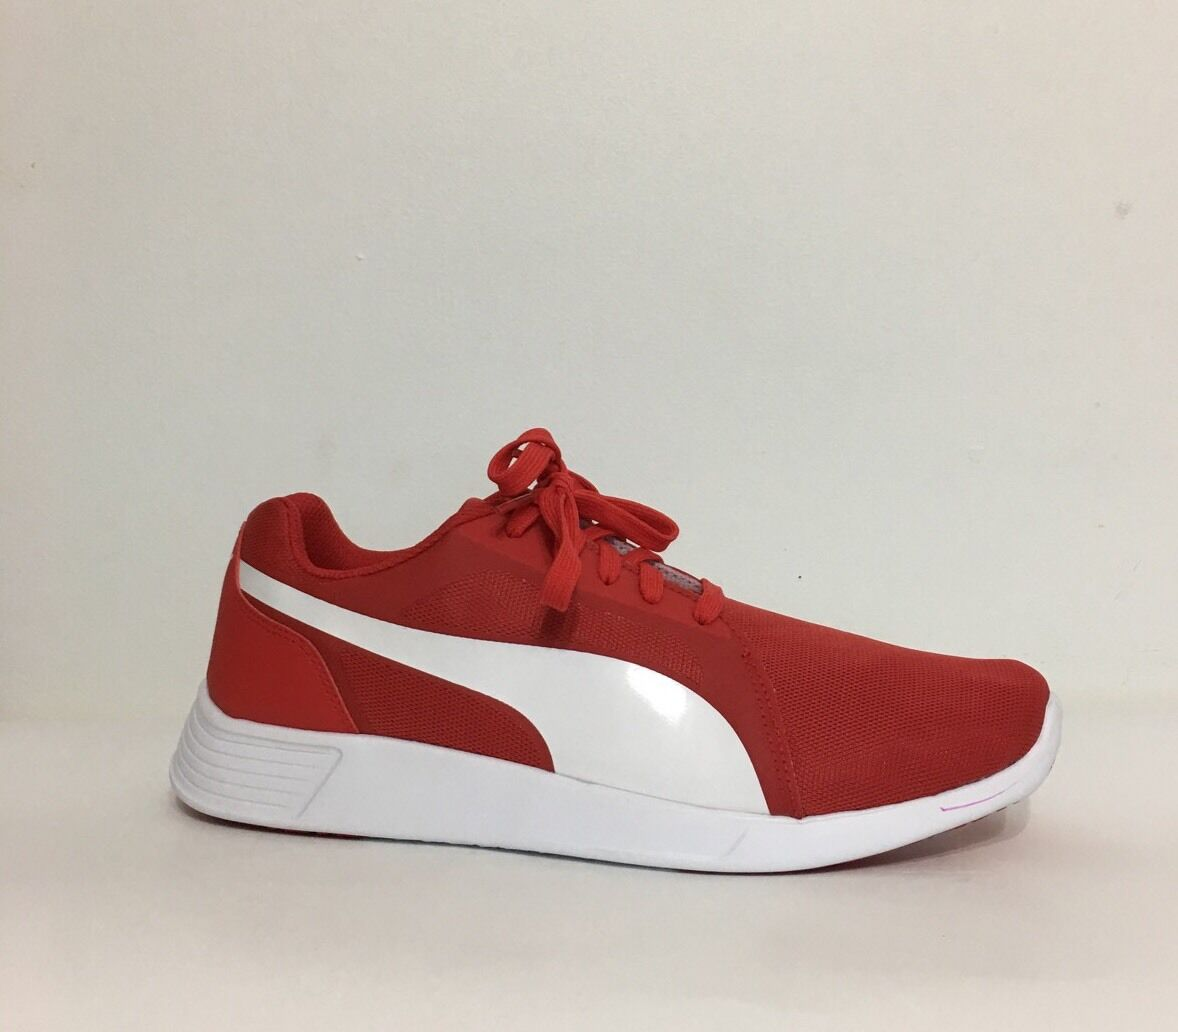 Nwob Puma St Trainer Evo Men Textile Red white Sneakers Size 12 Lace Up